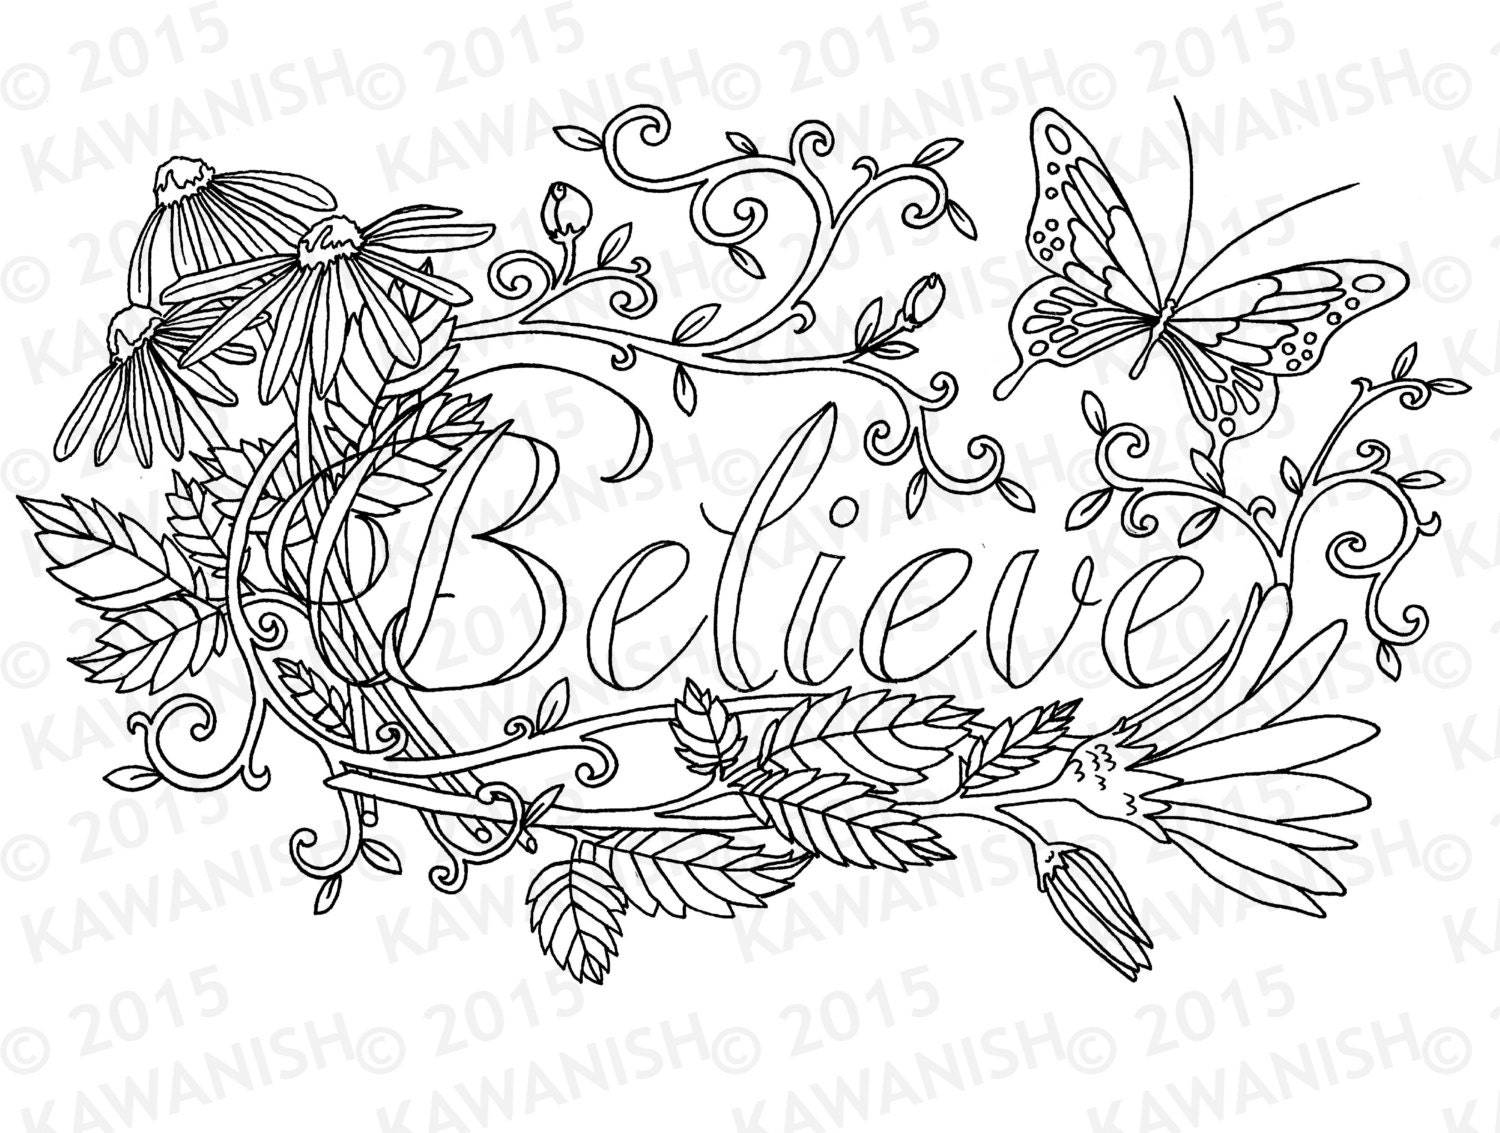 Inspirational Quotes Coloring Pages For Adults : Believe flower inspirational adult coloring page gift wall art